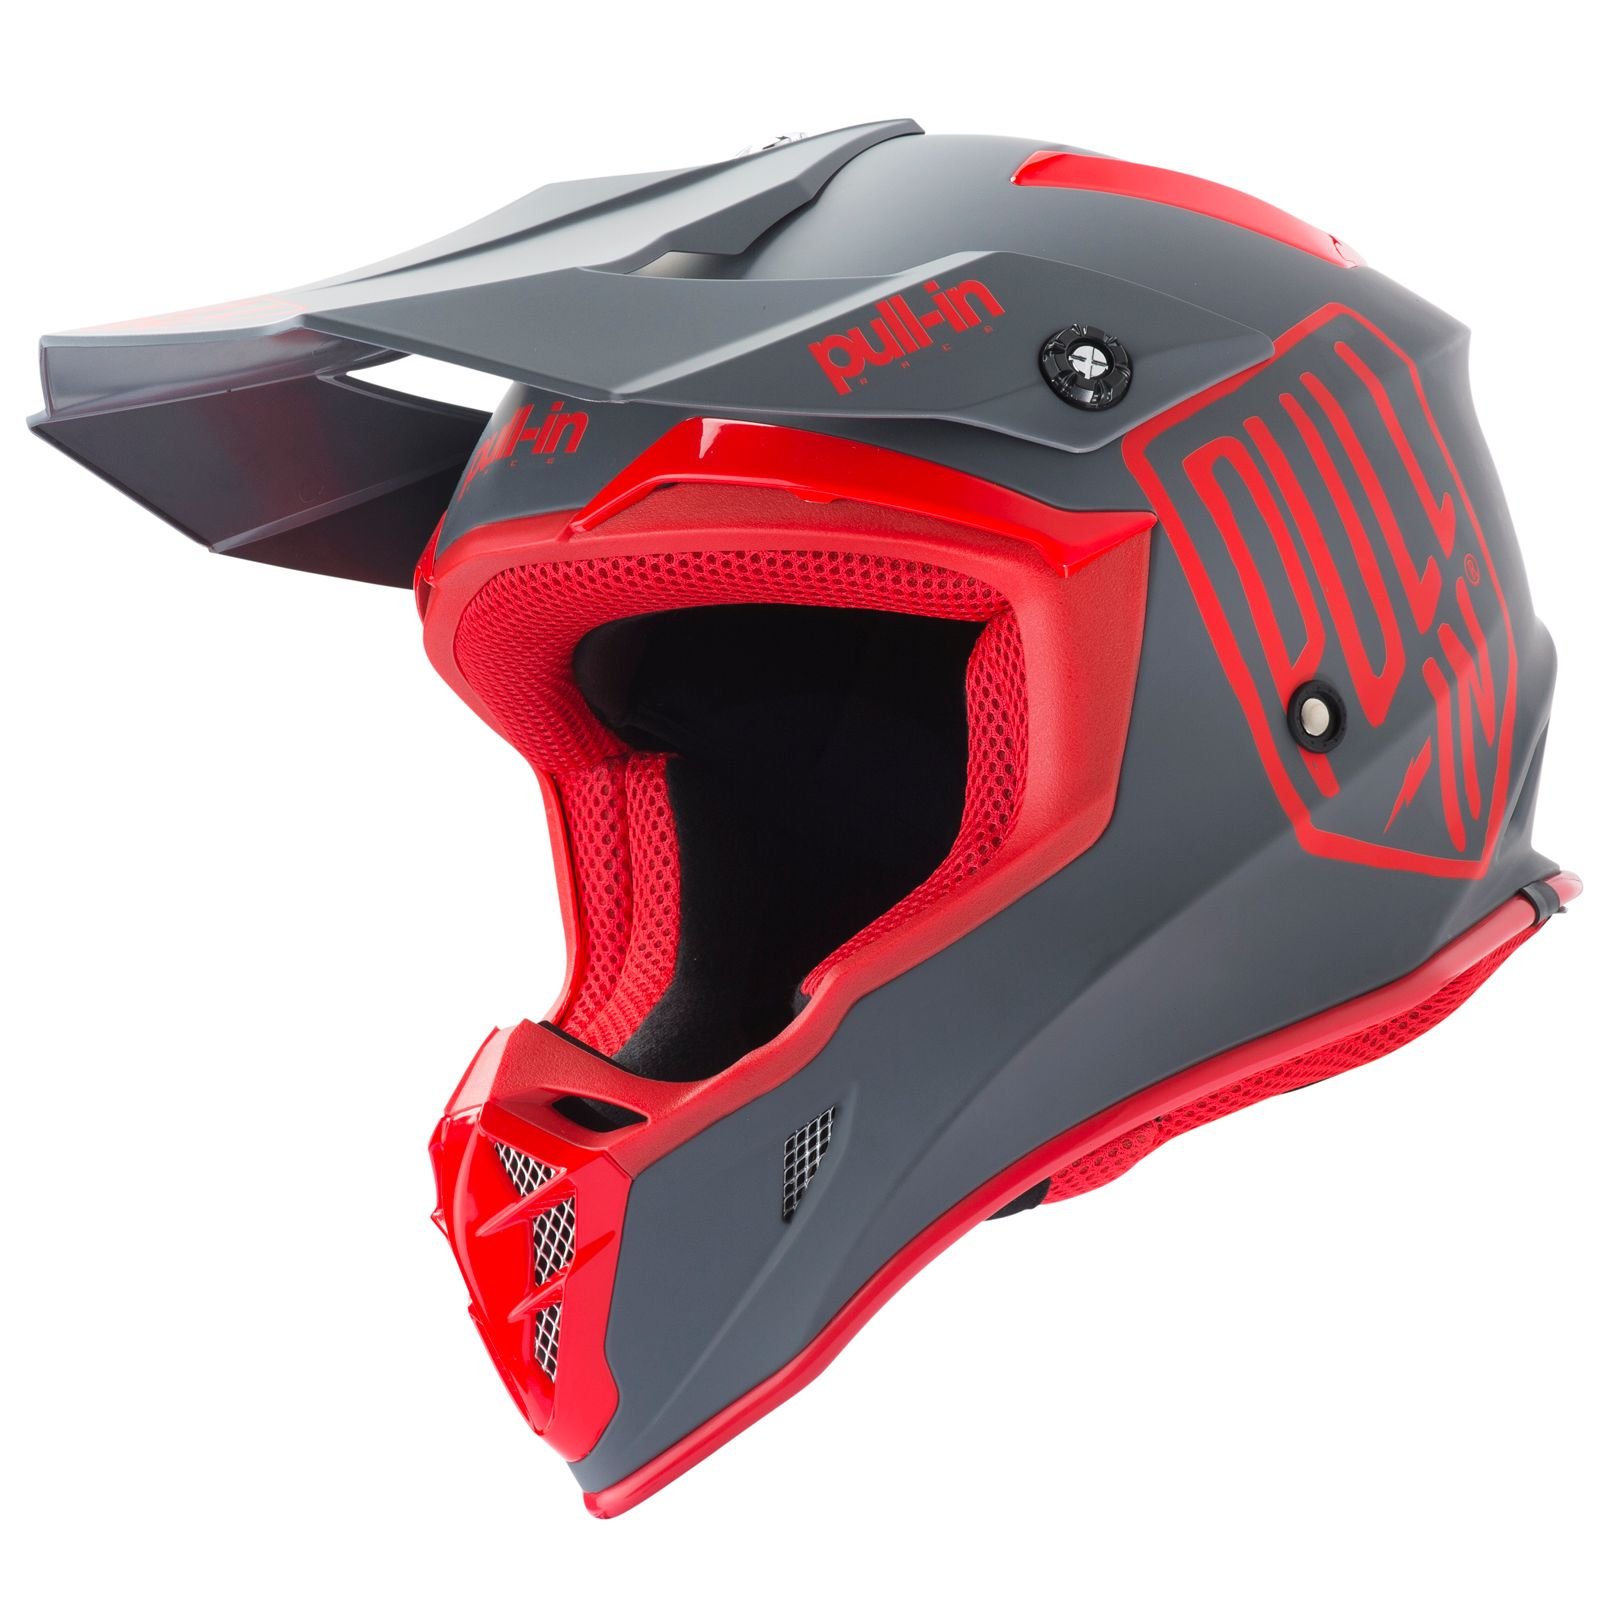 Casque cross Pull-in SOLID RED GREY 2019